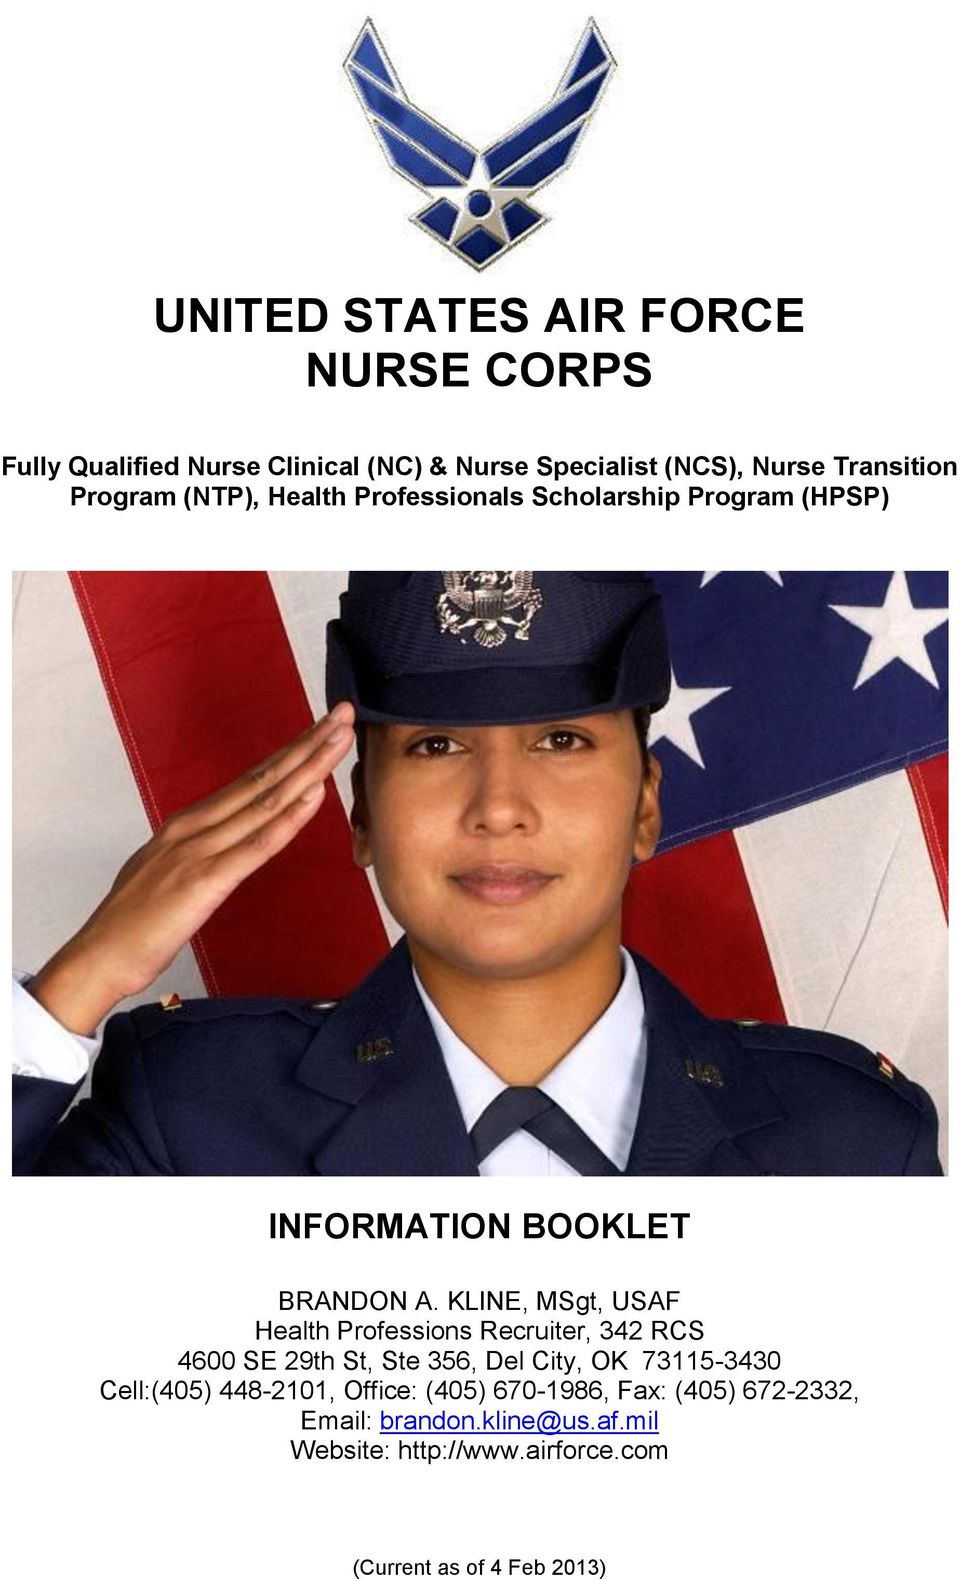 KLINE, MSgt, USAF Health Professions Recruiter, 342 RCS 4600 SE 29th St, Ste 356, Del City, OK 73115-3430 Cell:(405)